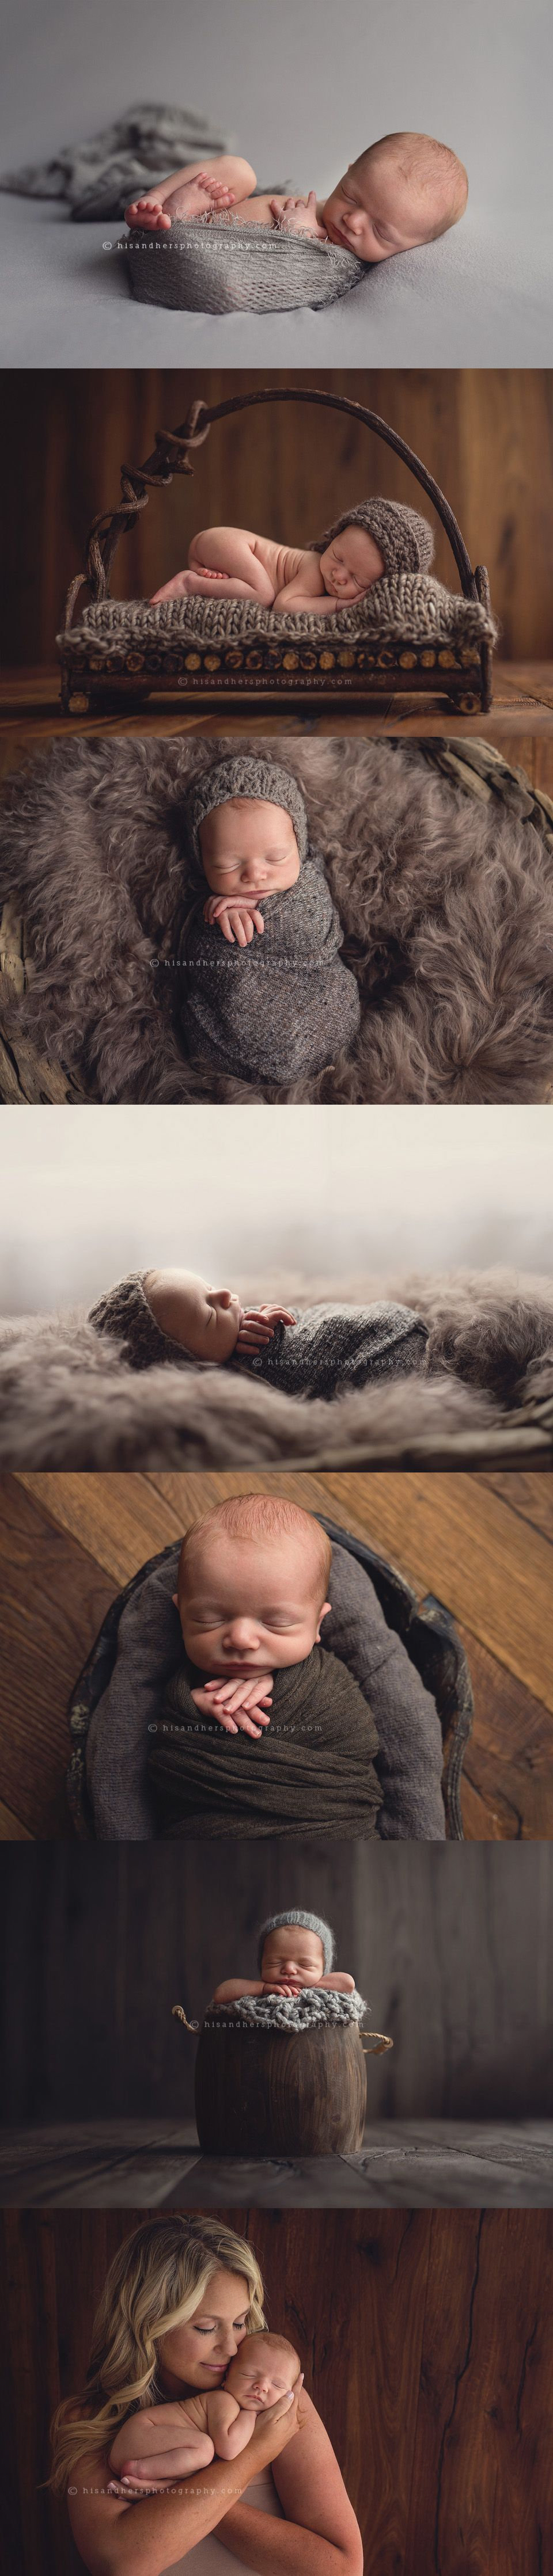 iowa newborn photographer baby photography des moines iowa